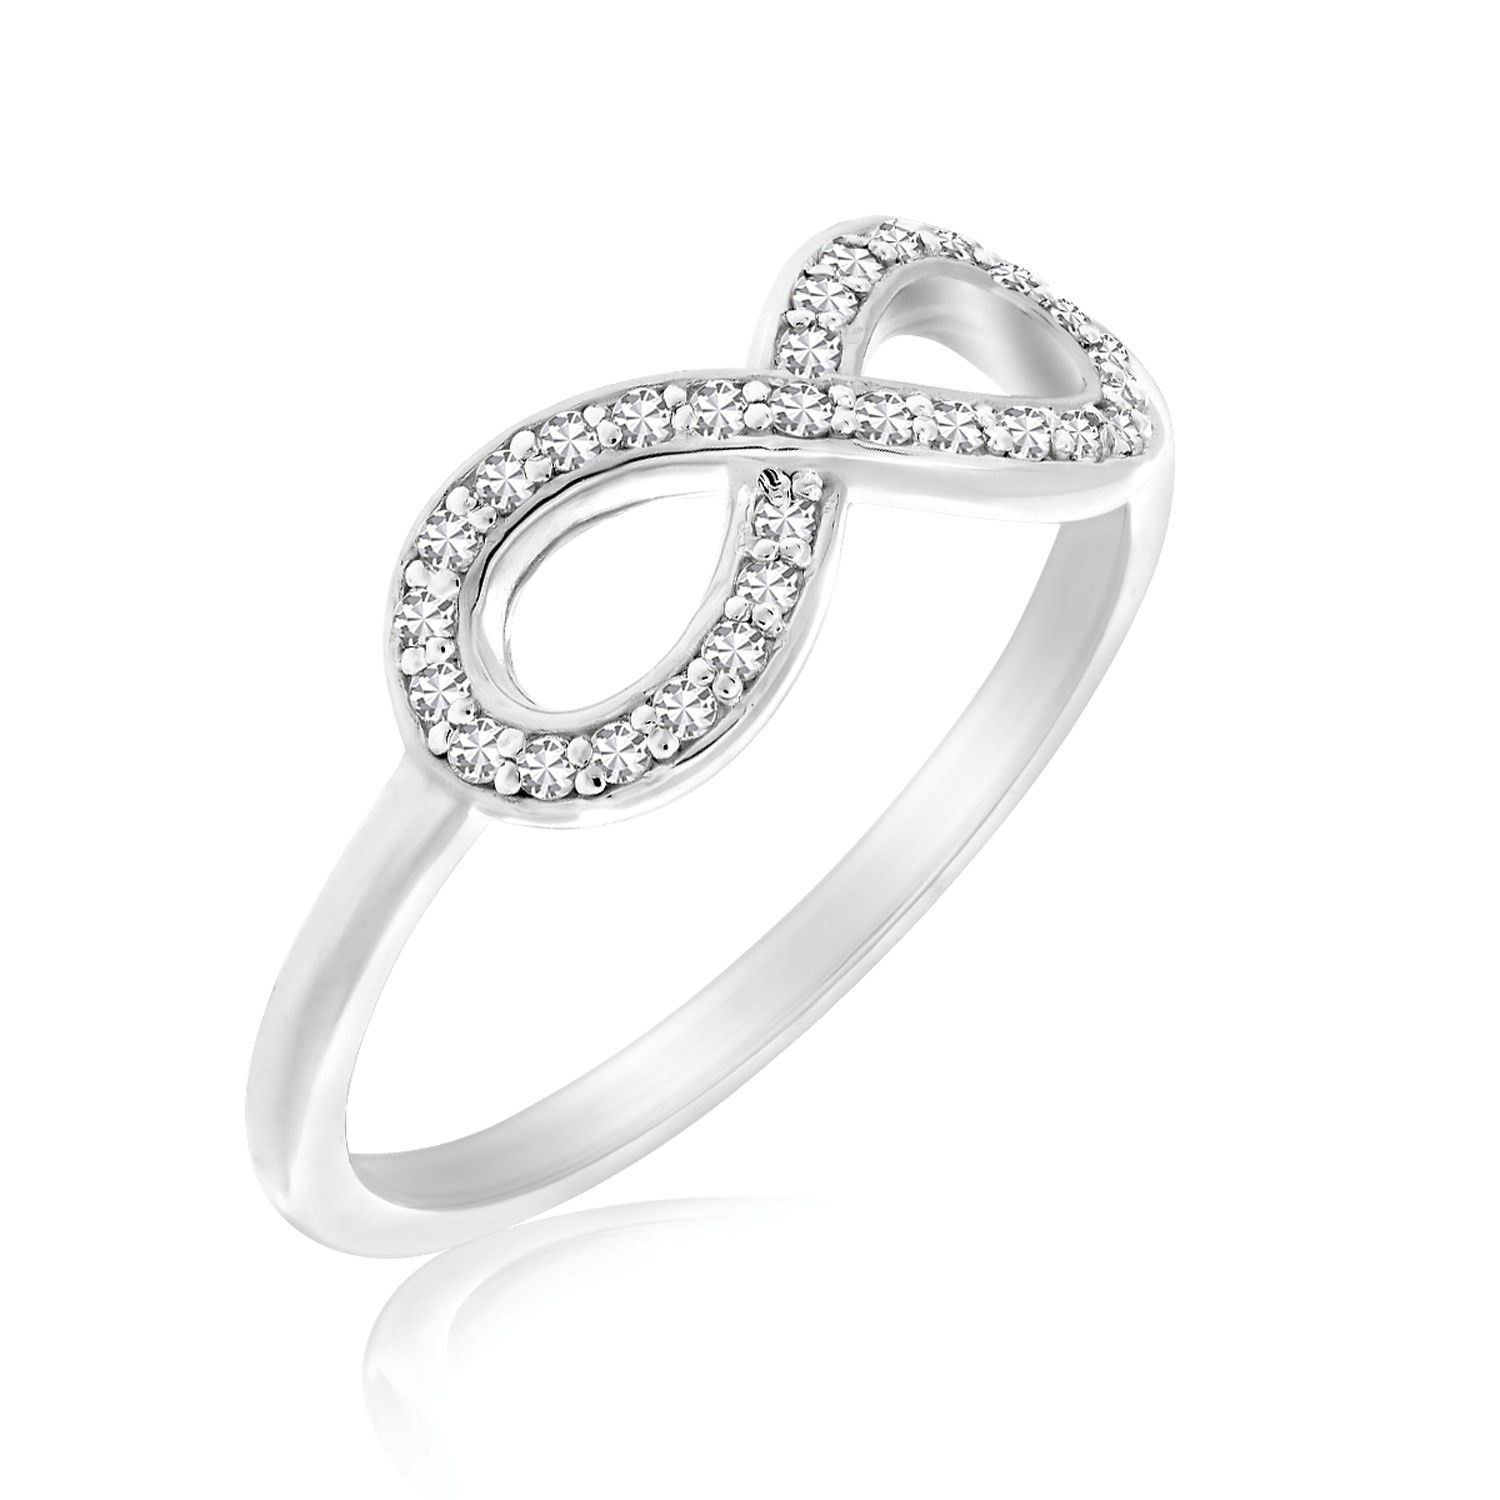 14K White Gold Infinity Ring with Diamond Accents 17ct tw